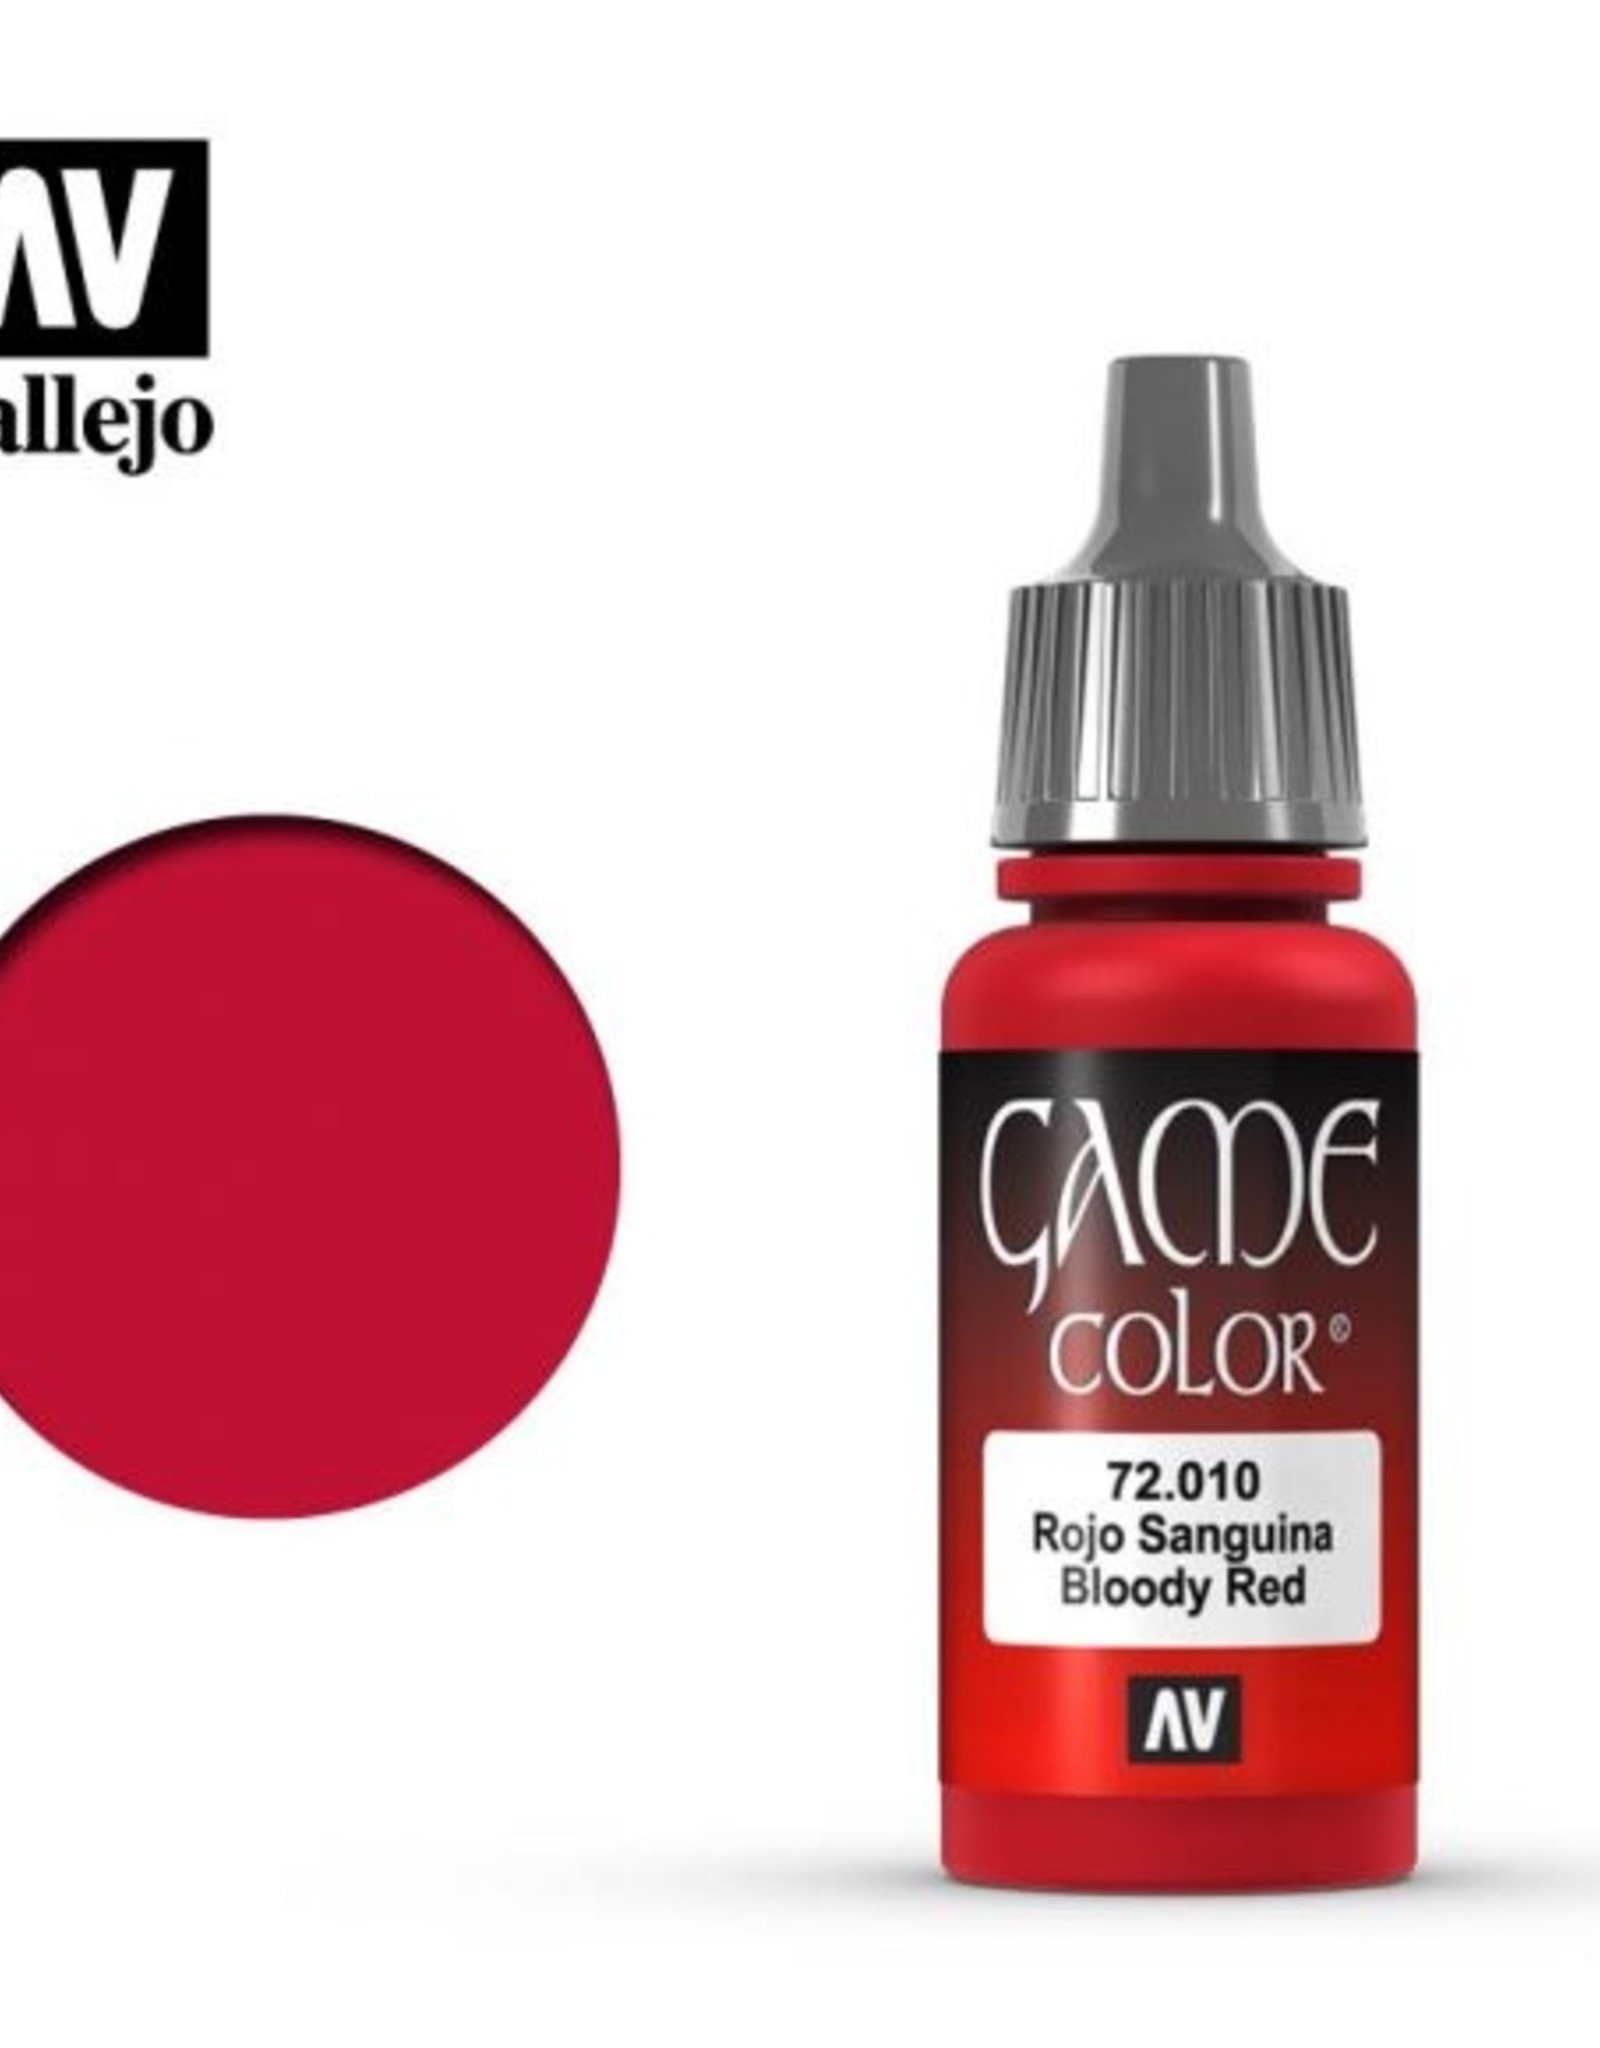 Vallejo 72.010 Bloody Red